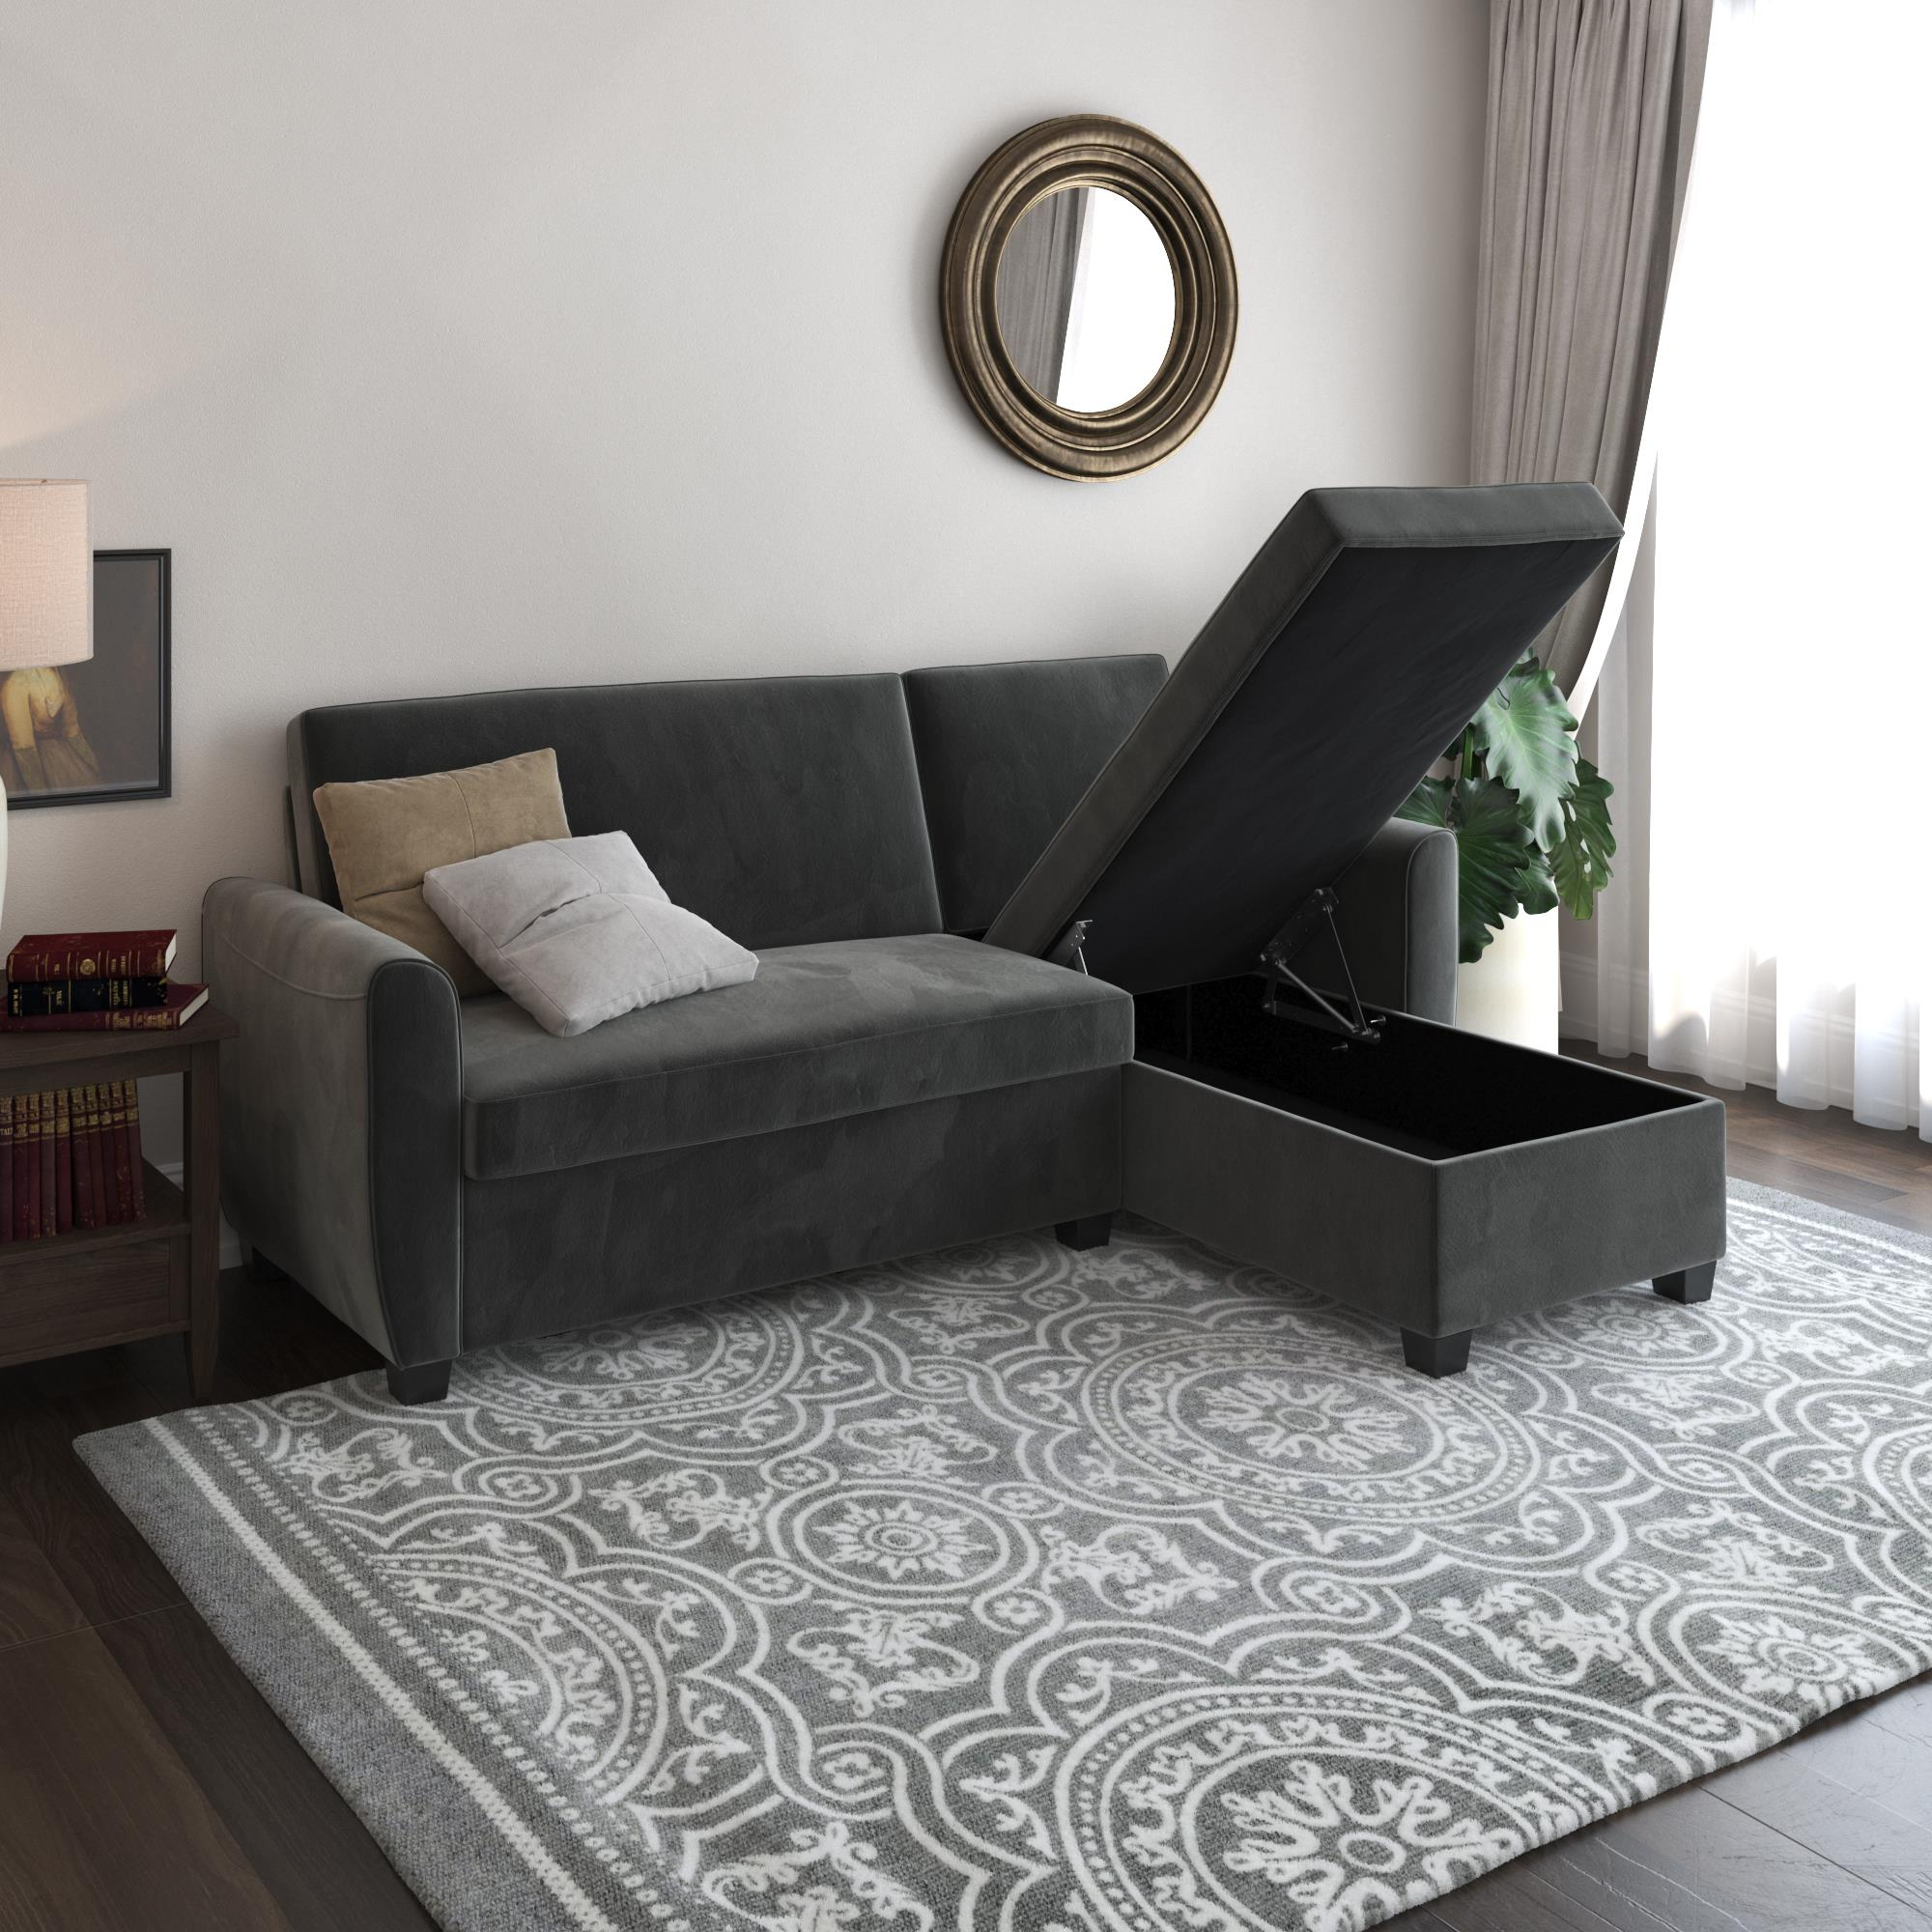 Dhp Noah Sectional Sofa Bed With Storage, Twin Bed Frame Regarding Hartford Storage Sectional Futon Sofas (View 14 of 15)